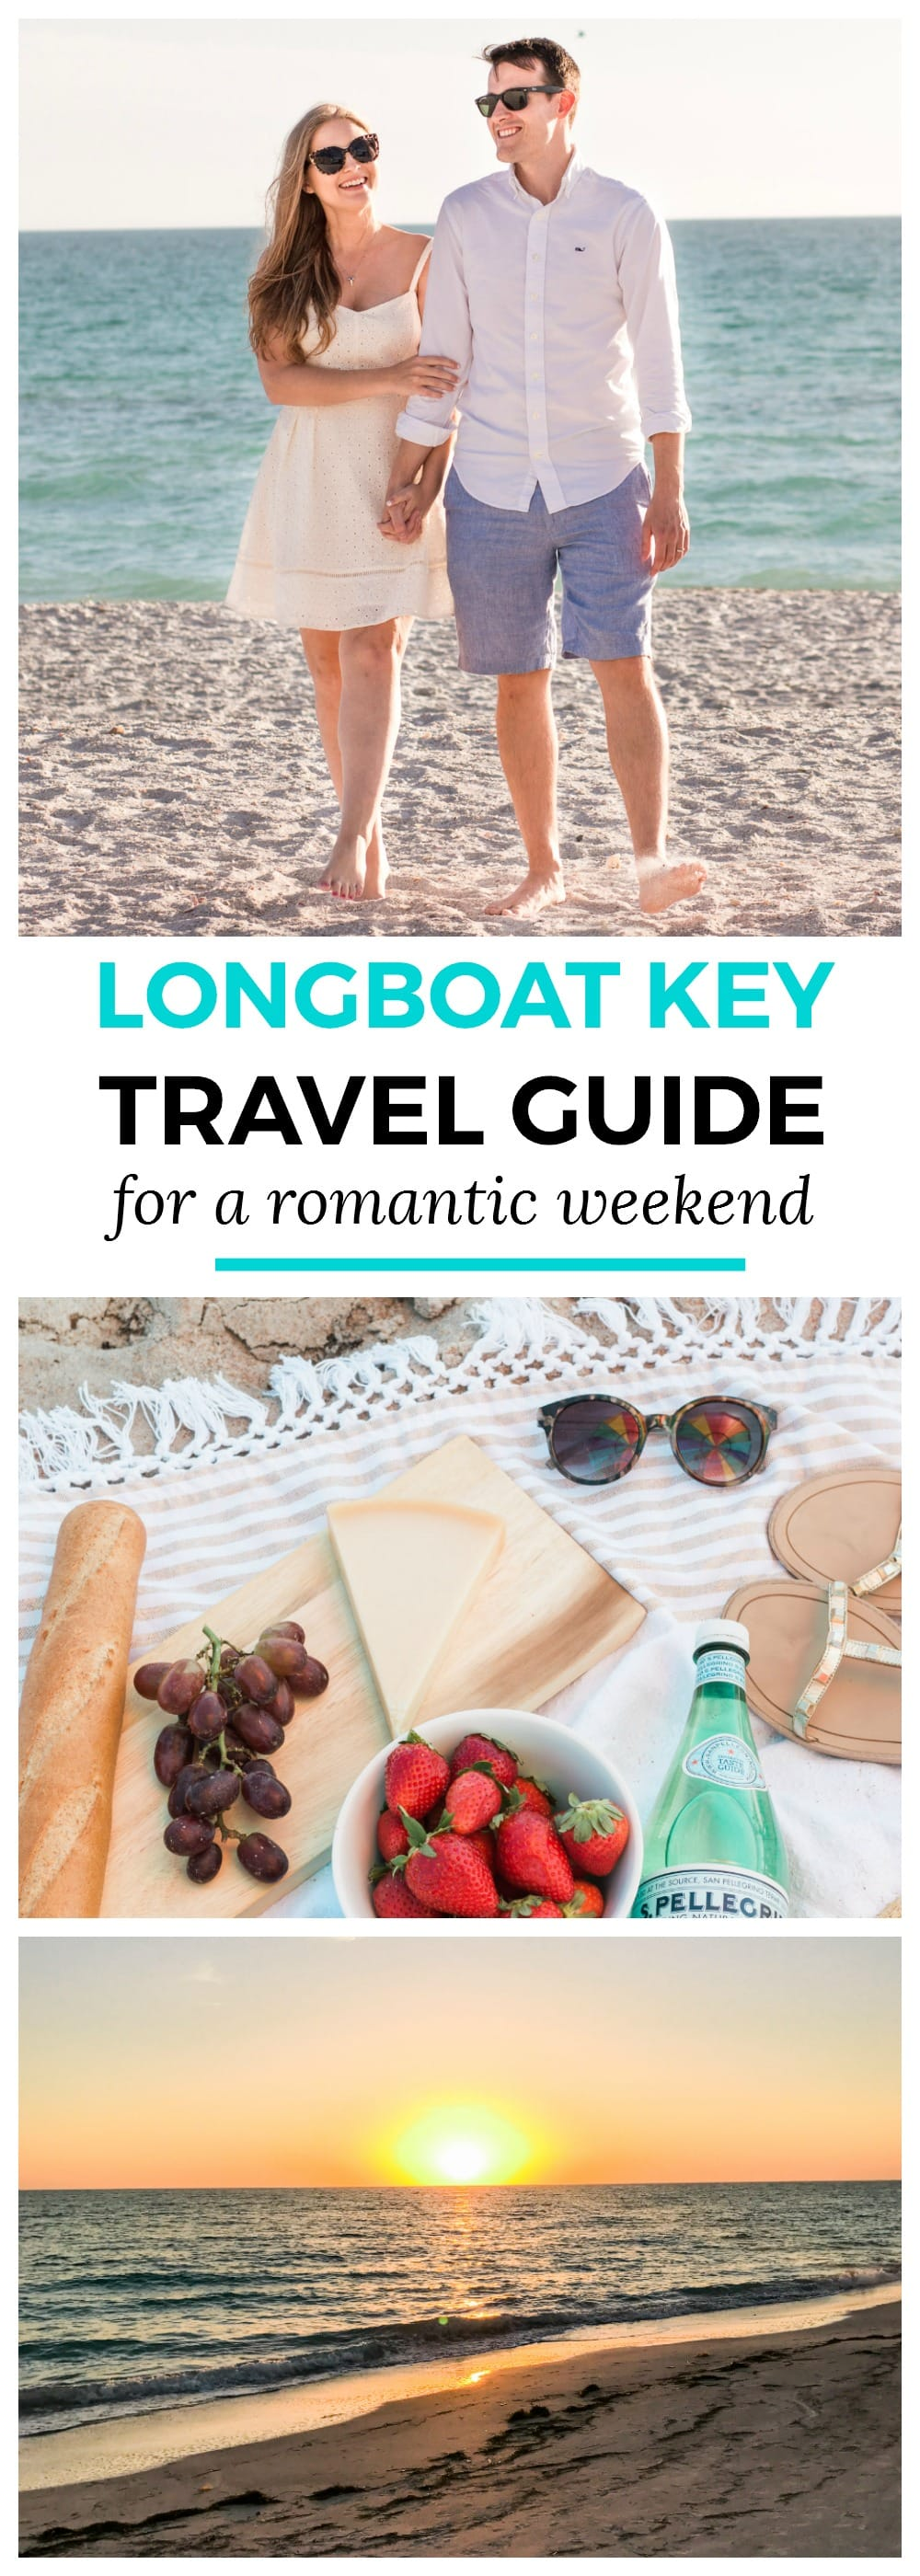 Longboat Key weekend travel guide for romance and relaxation | How to plan a romantic weekend getaway in Longboat Key, Florida, including a sunset beach stroll on Lido Key Beach near St Armands Circle! #LoveFL sponsored by @visitflorida | Florida travel tips, beach vacation, vacation ideas, vacation goals, travel blogger Ashley Brooke Nicholas, Florida travel guide, Longboat Key travel guide, Sarasota travel guide, beautiful beaches, affordable travel, summer vacation, romantic vacation